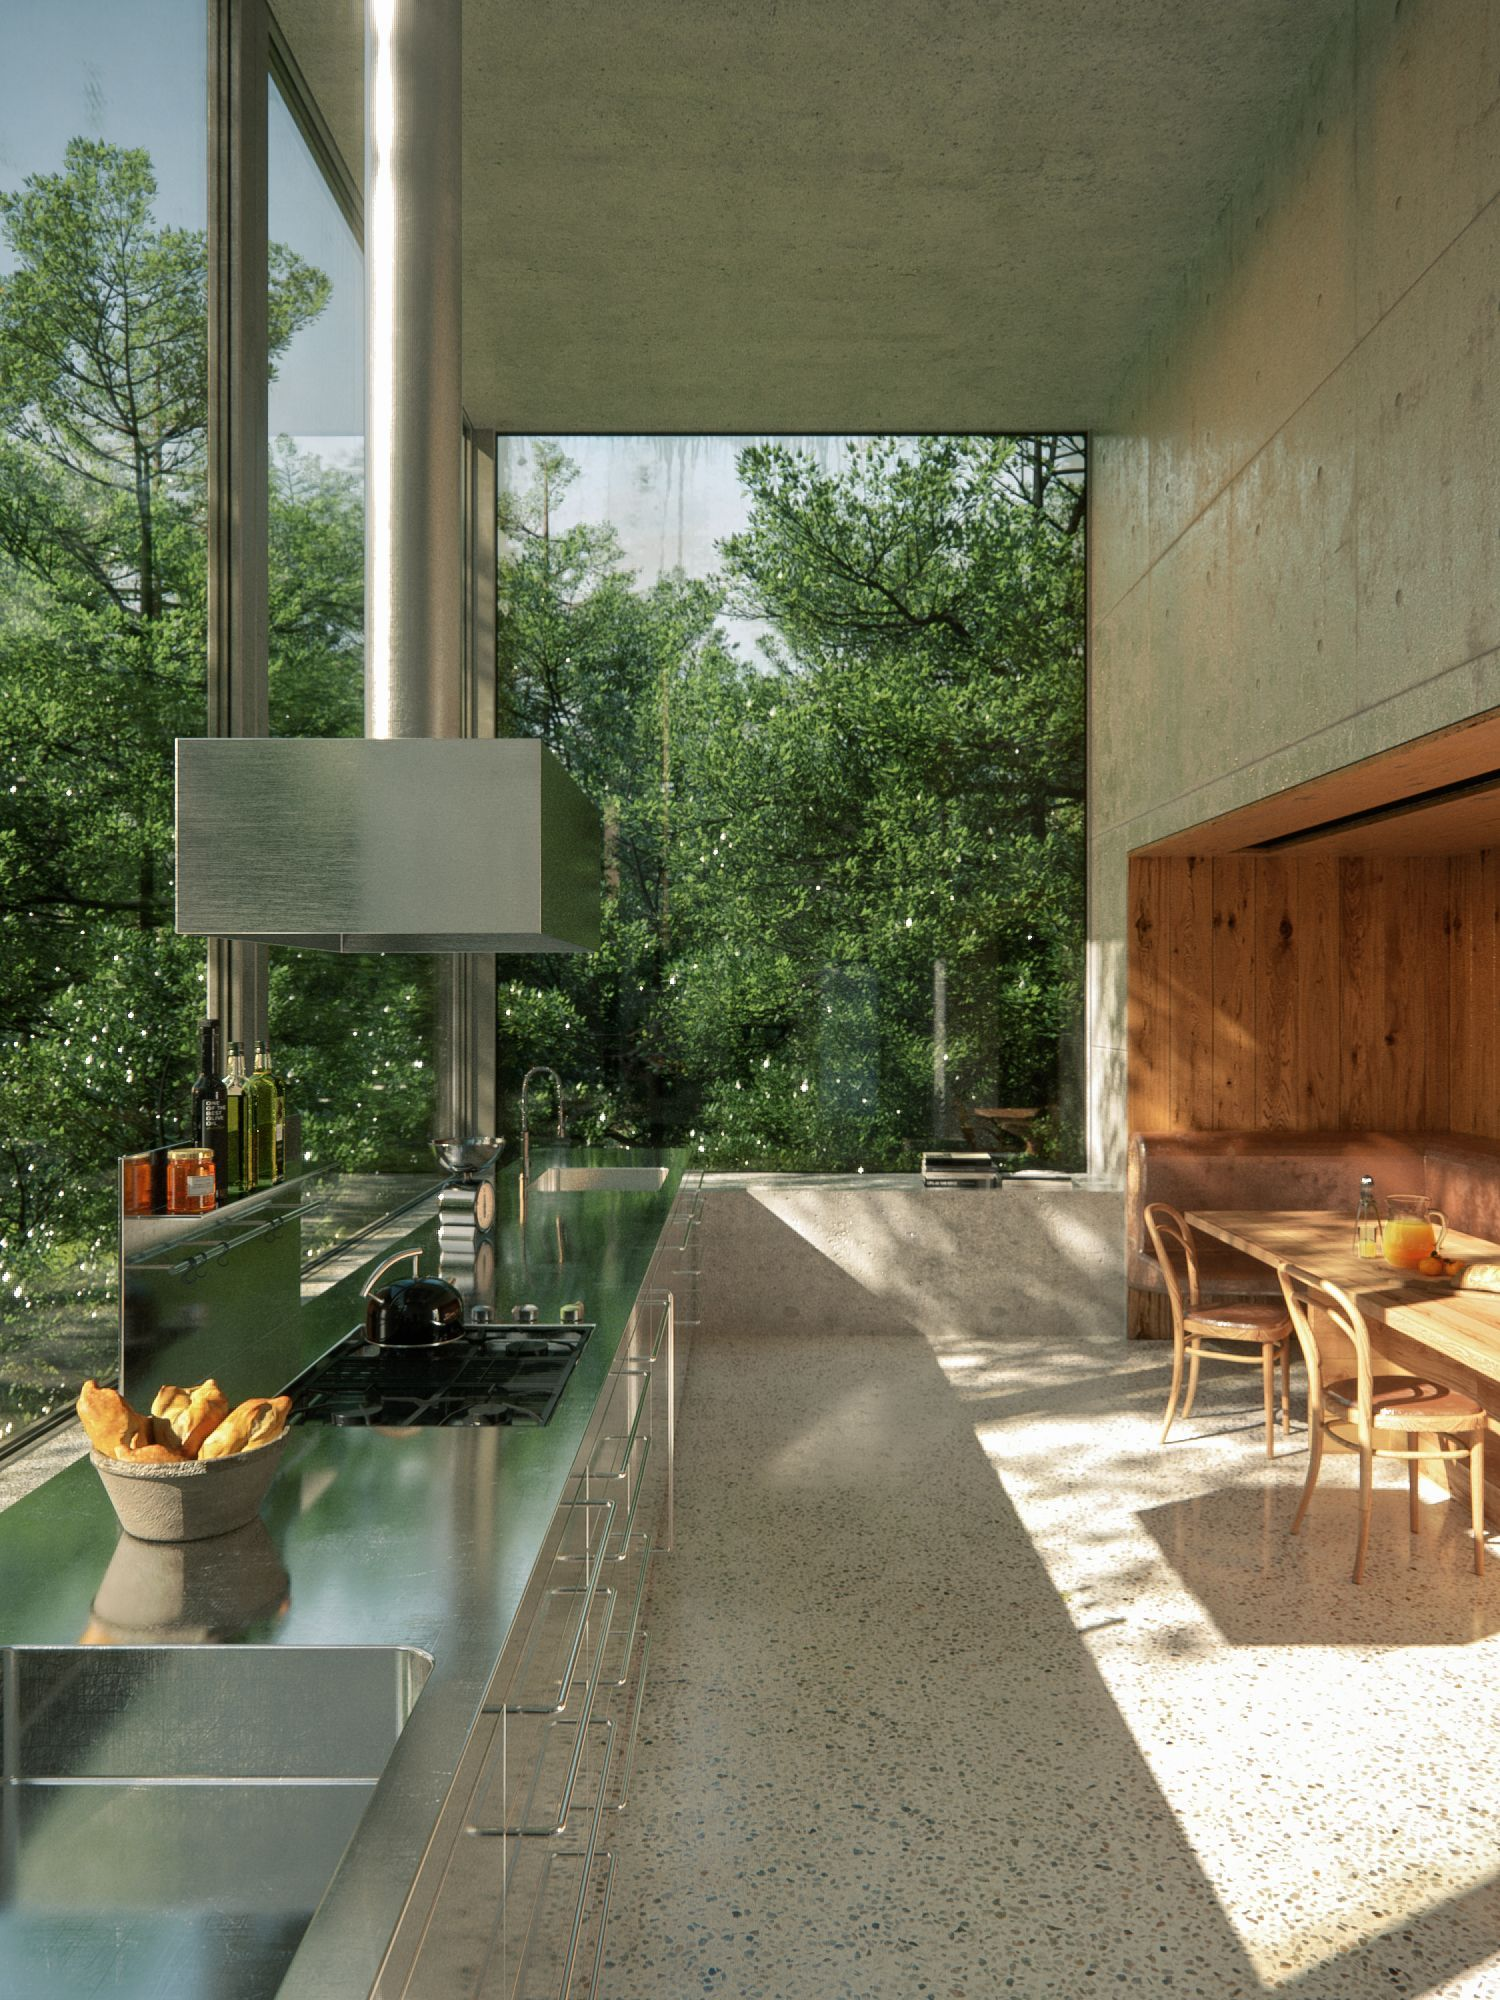 Image Result For Peter Zumthor Kitchen Architecture Pinterest